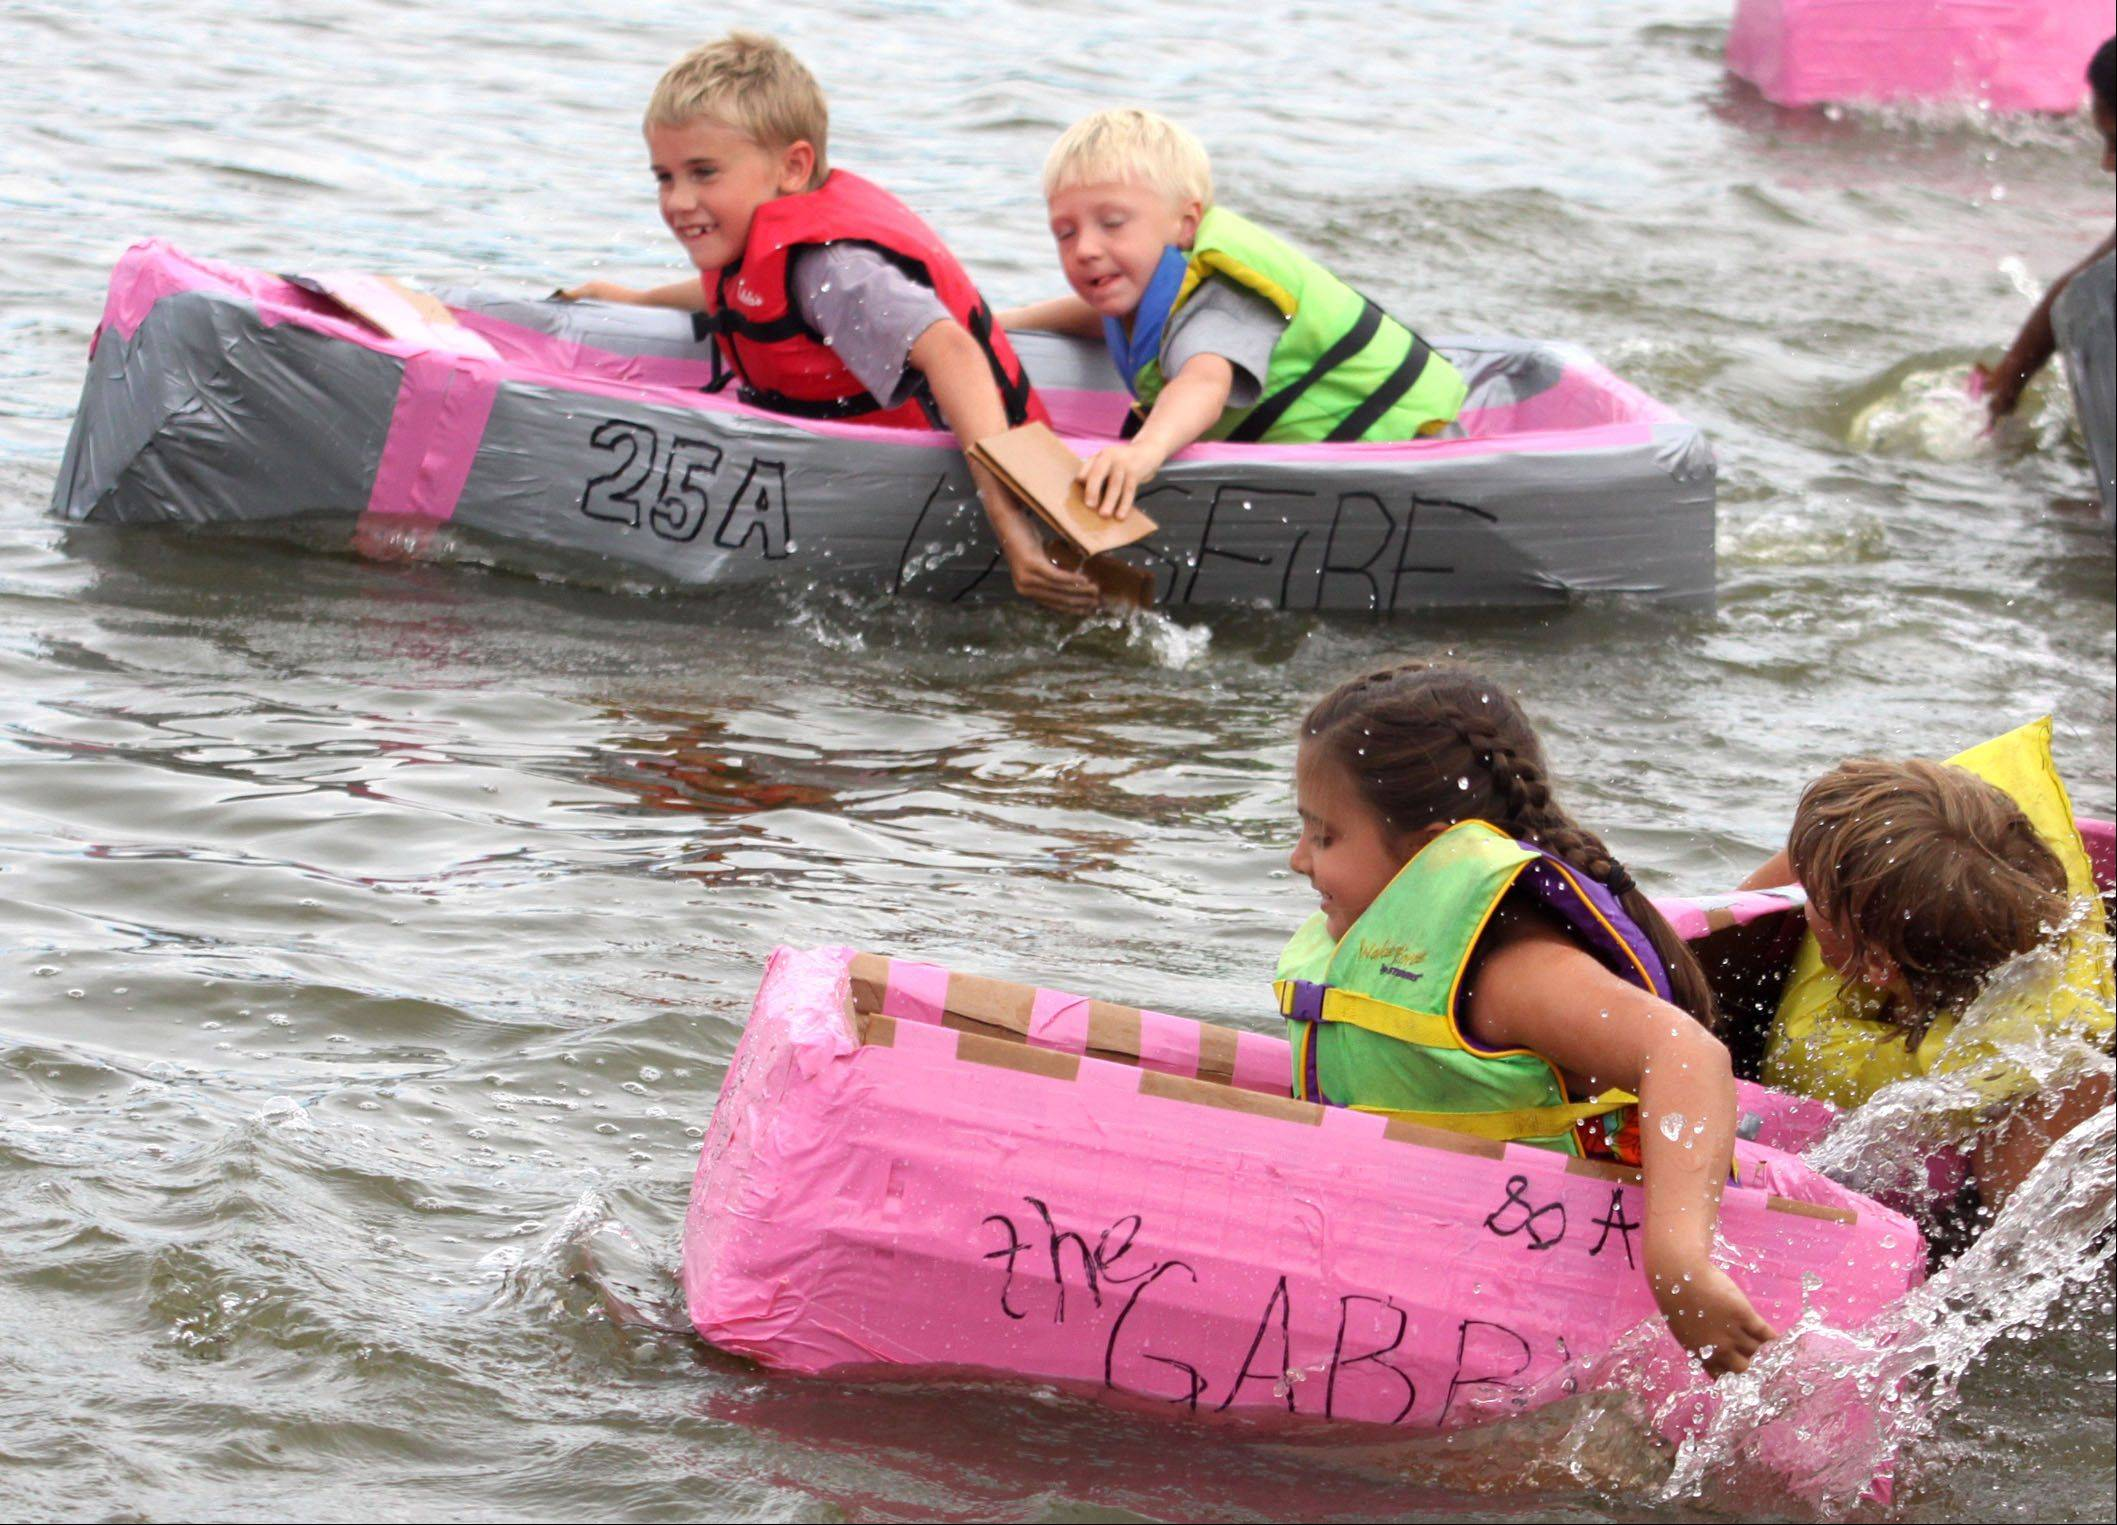 Racers navigate the Fox River during the Cardboard Boat Regatta juniors race as part of Founders' Days festivities in Algonquin Thursday night.